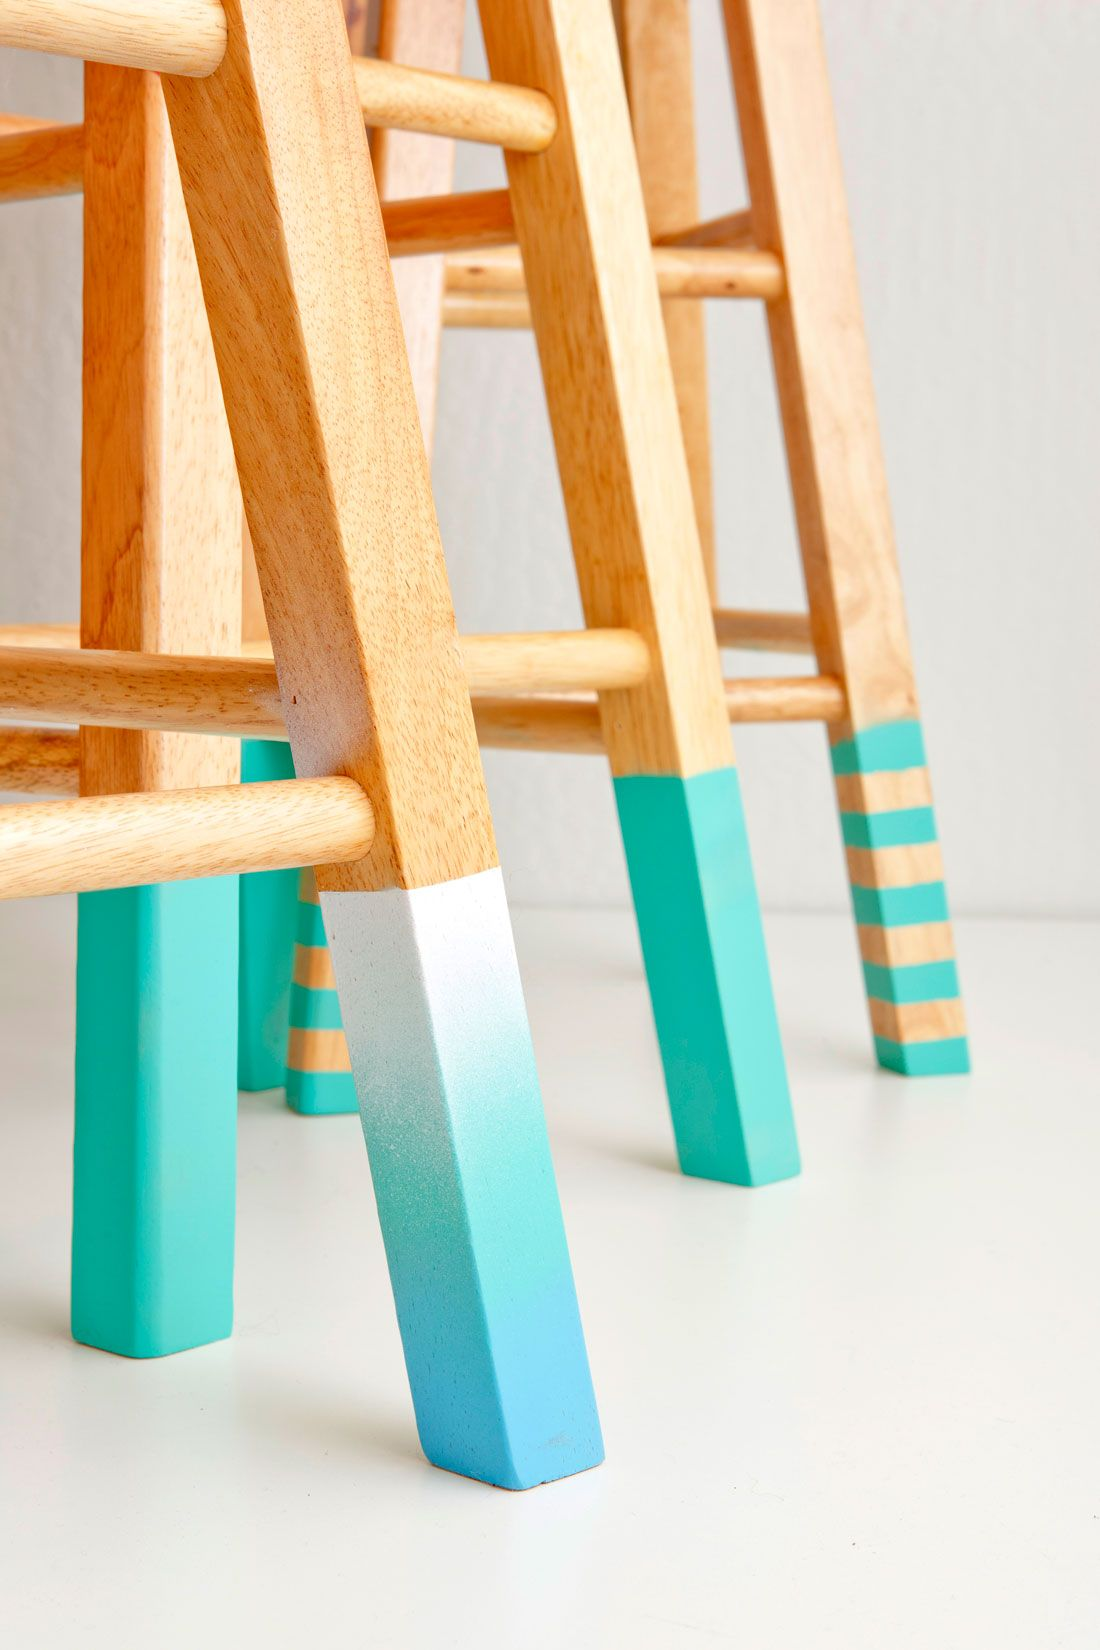 Trick out a basic bar stool with this simple DIY.